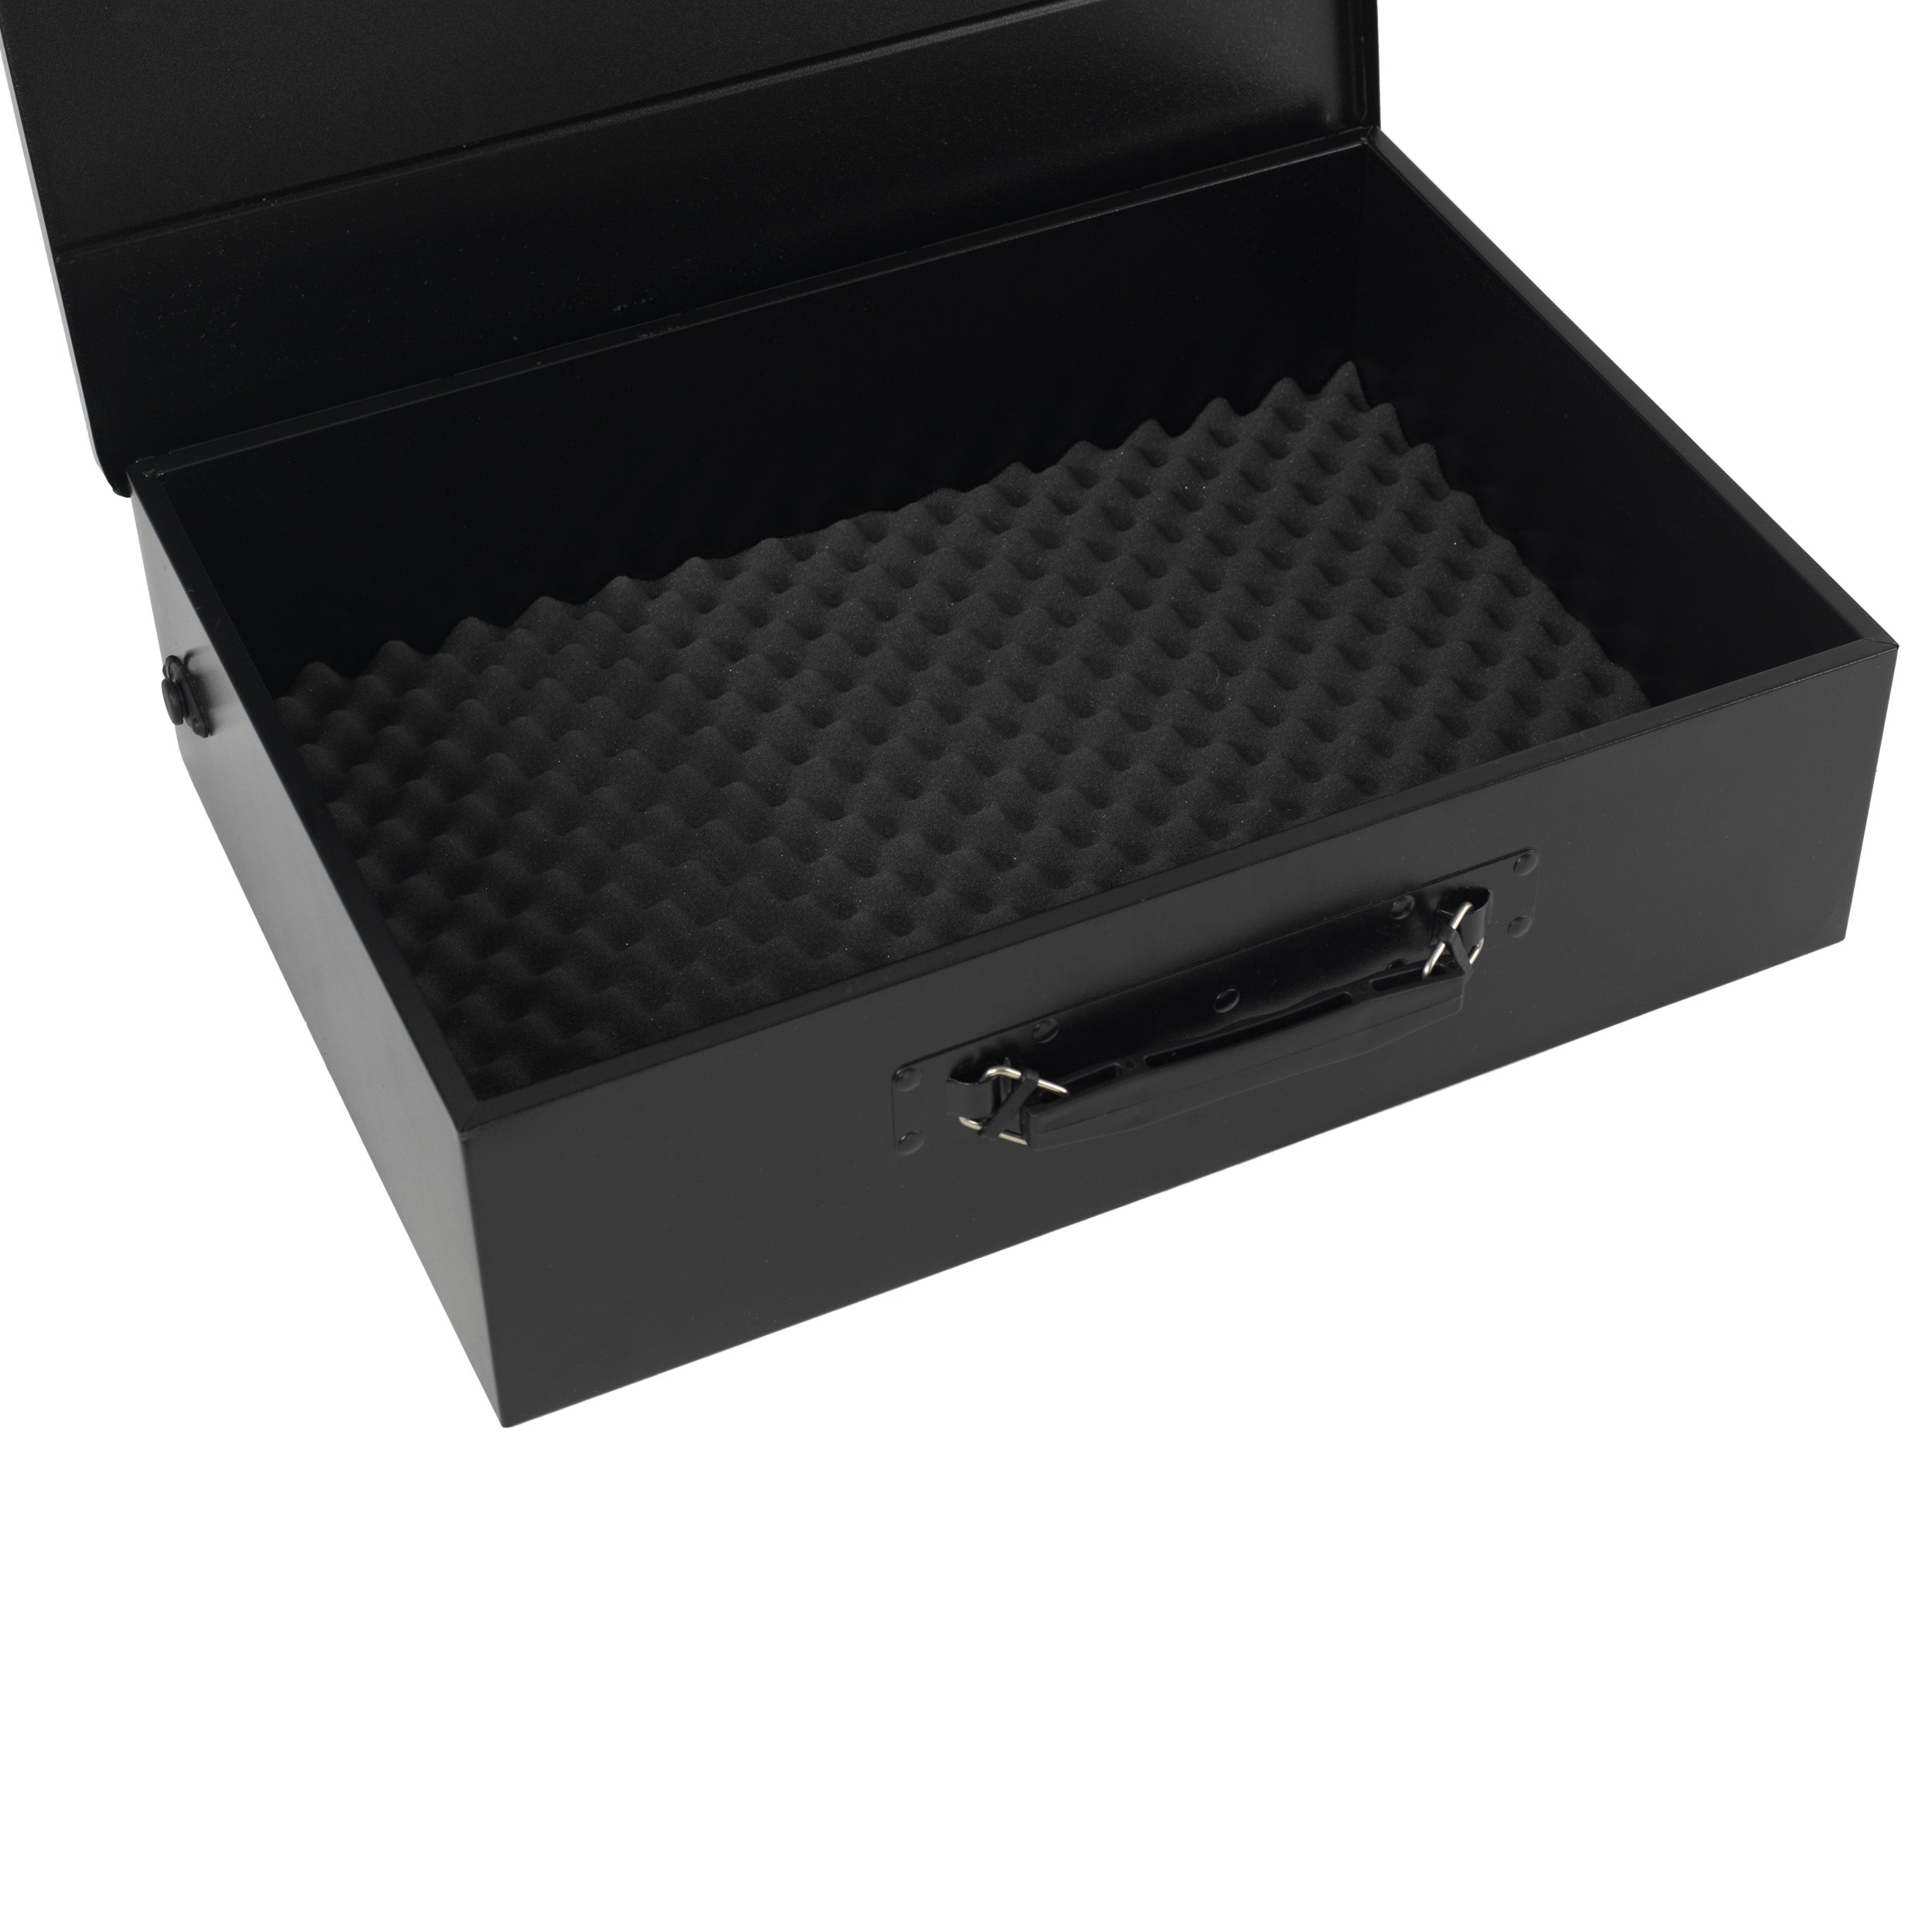 First Alert 3035DF Deluxe Digital Security Box, Black/Silver by First Alert (Image #4)